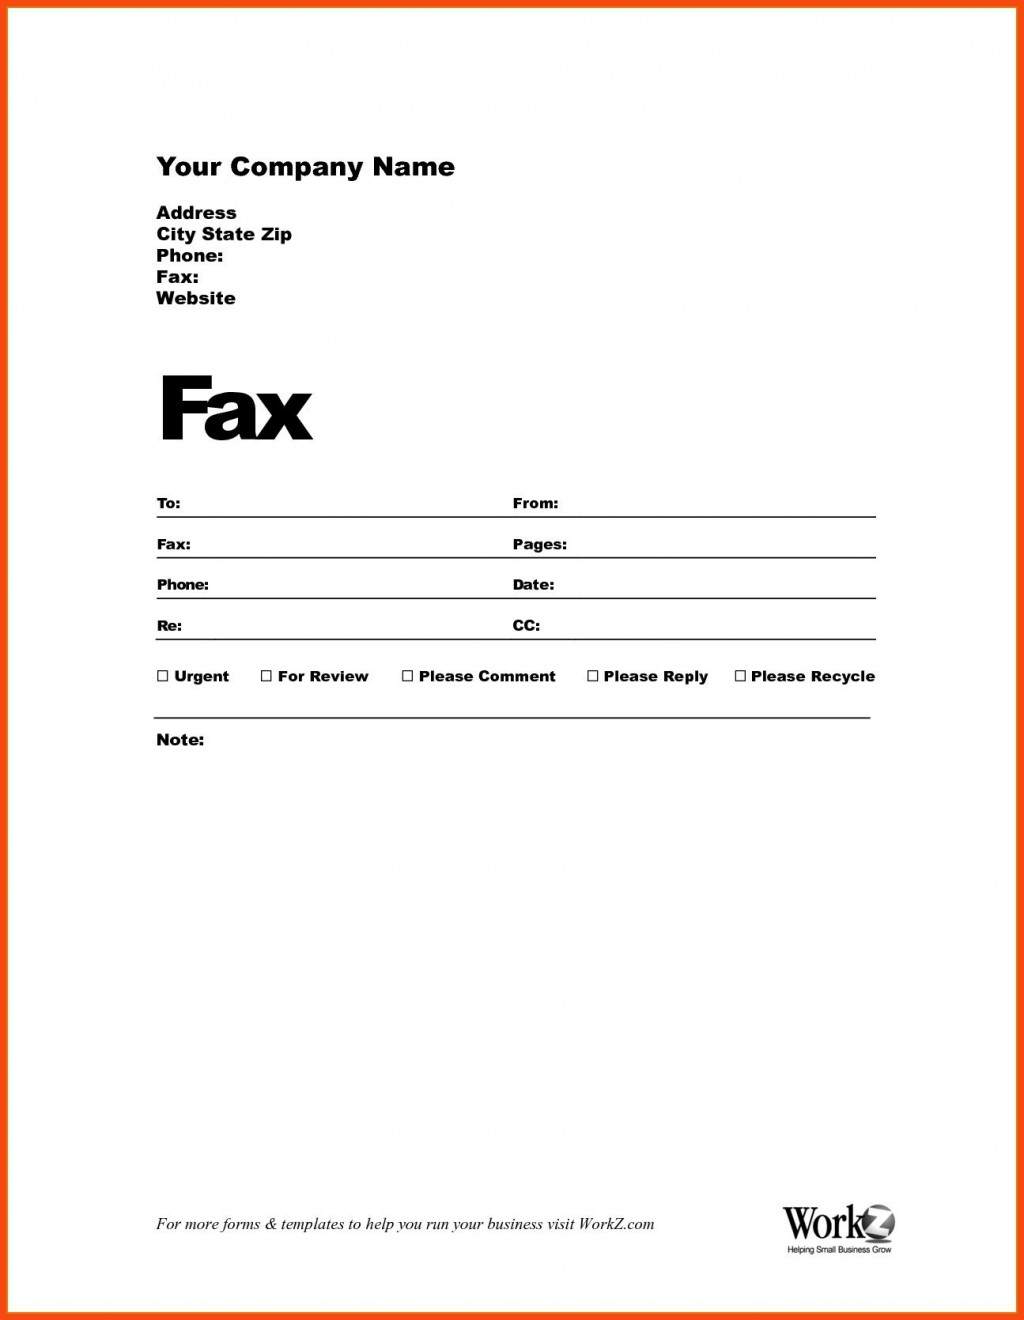 003 Impressive Fax Template Microsoft Word Example  Cover Sheet 2010 Letter BusinesLarge